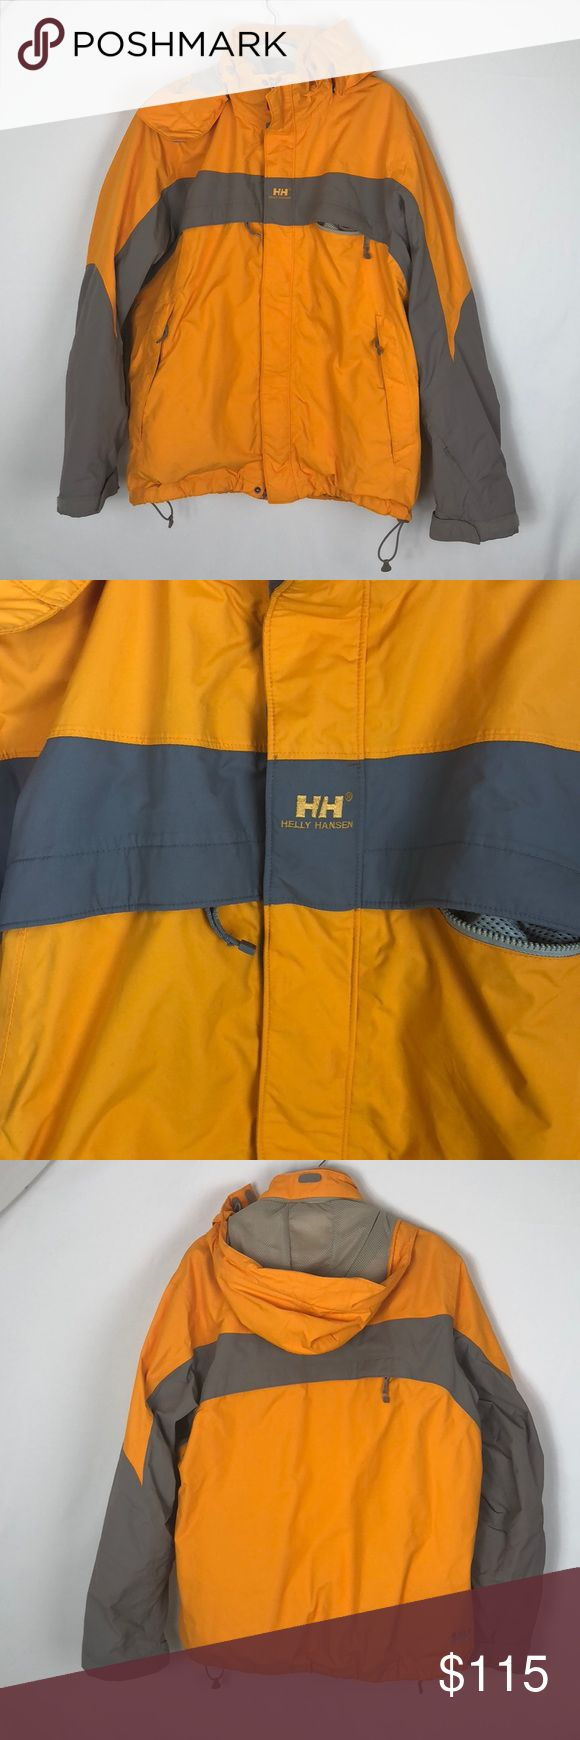 Helly Hansen Helly Tech coat Helly Hansen Helly Tech coat  EUC  Measurements laying flat Pitt to pit 24 inches length 28 inches Helly Hansen Jackets & Coats Ski & Snowboard